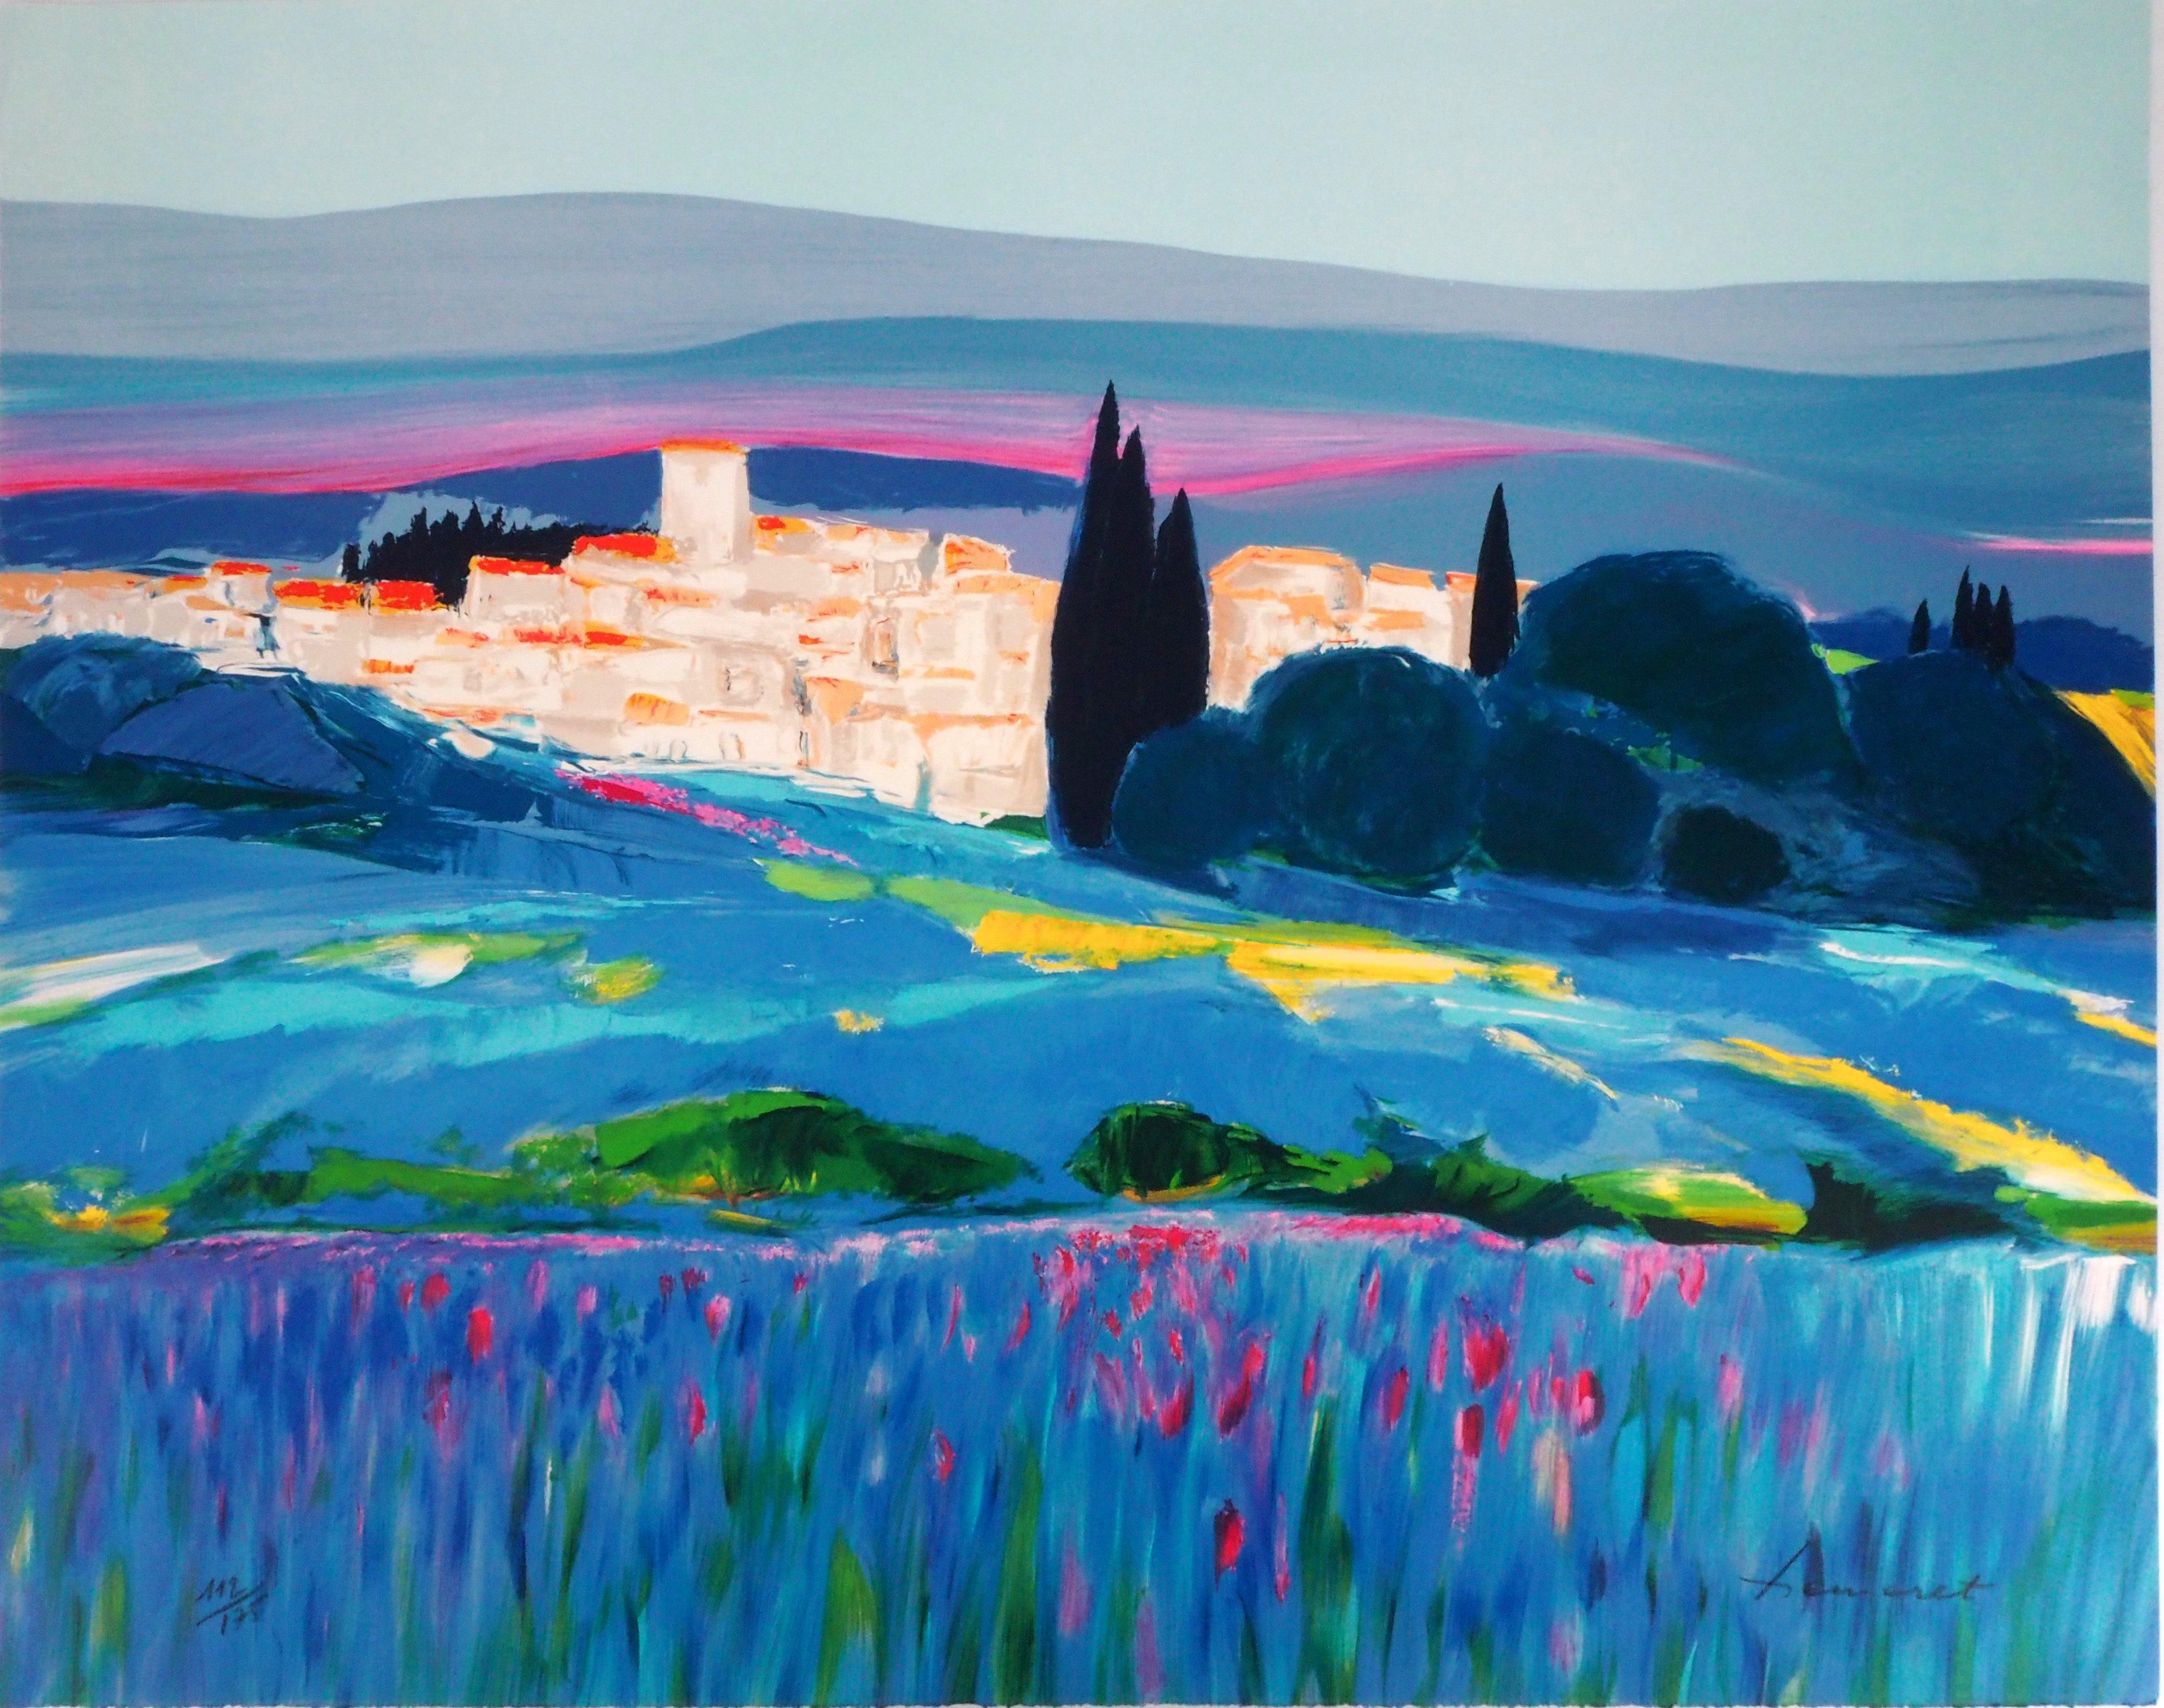 South of France : Village in Provence - Original Lithograph, Handsigned